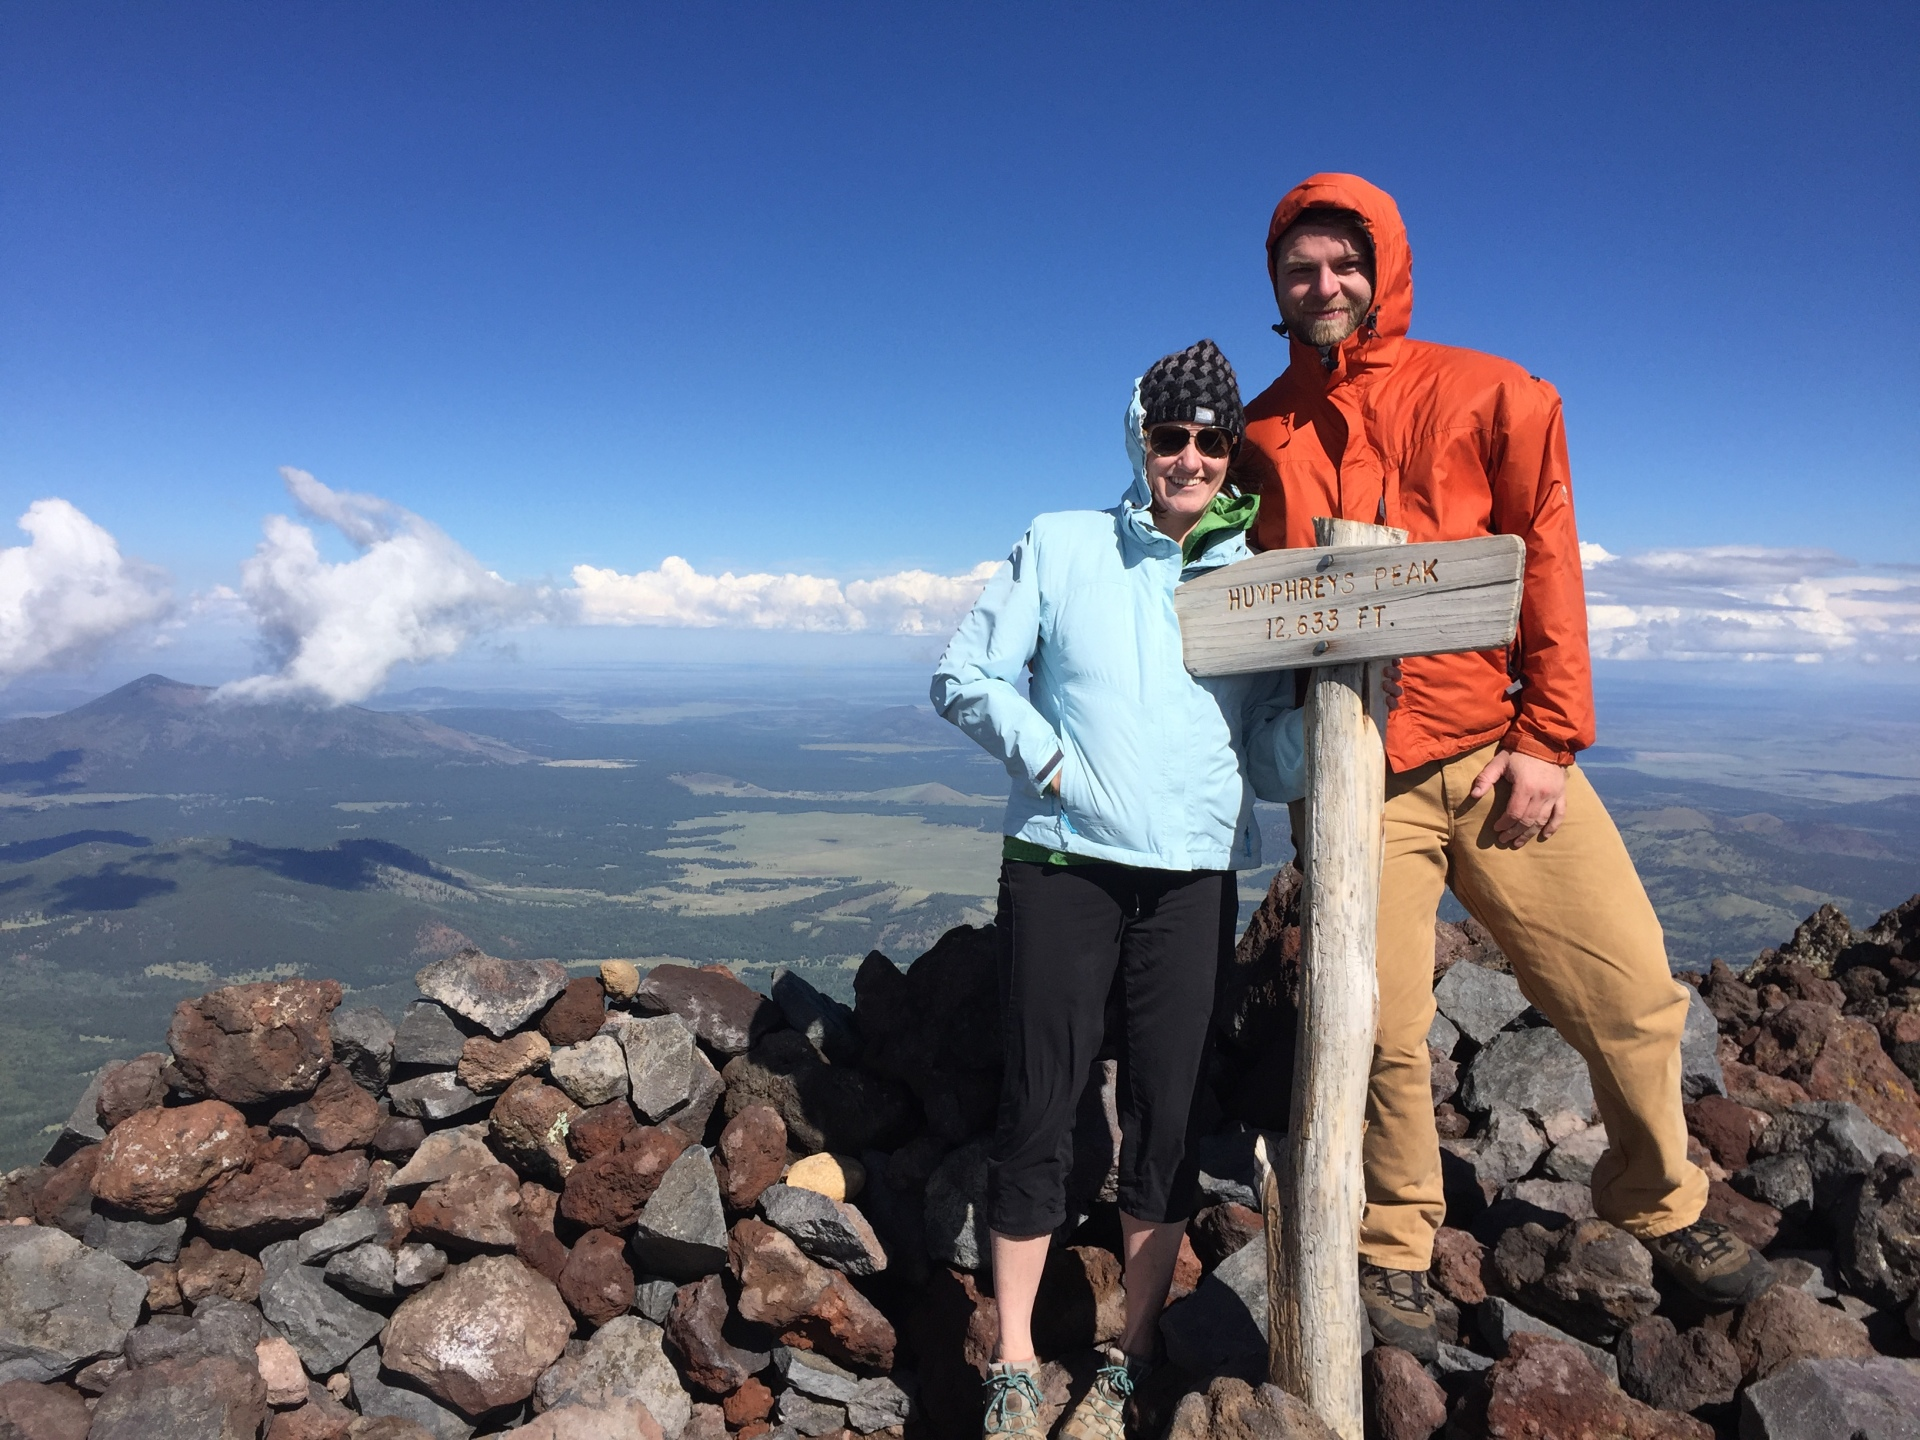 humphreys peak flagstaff hiking